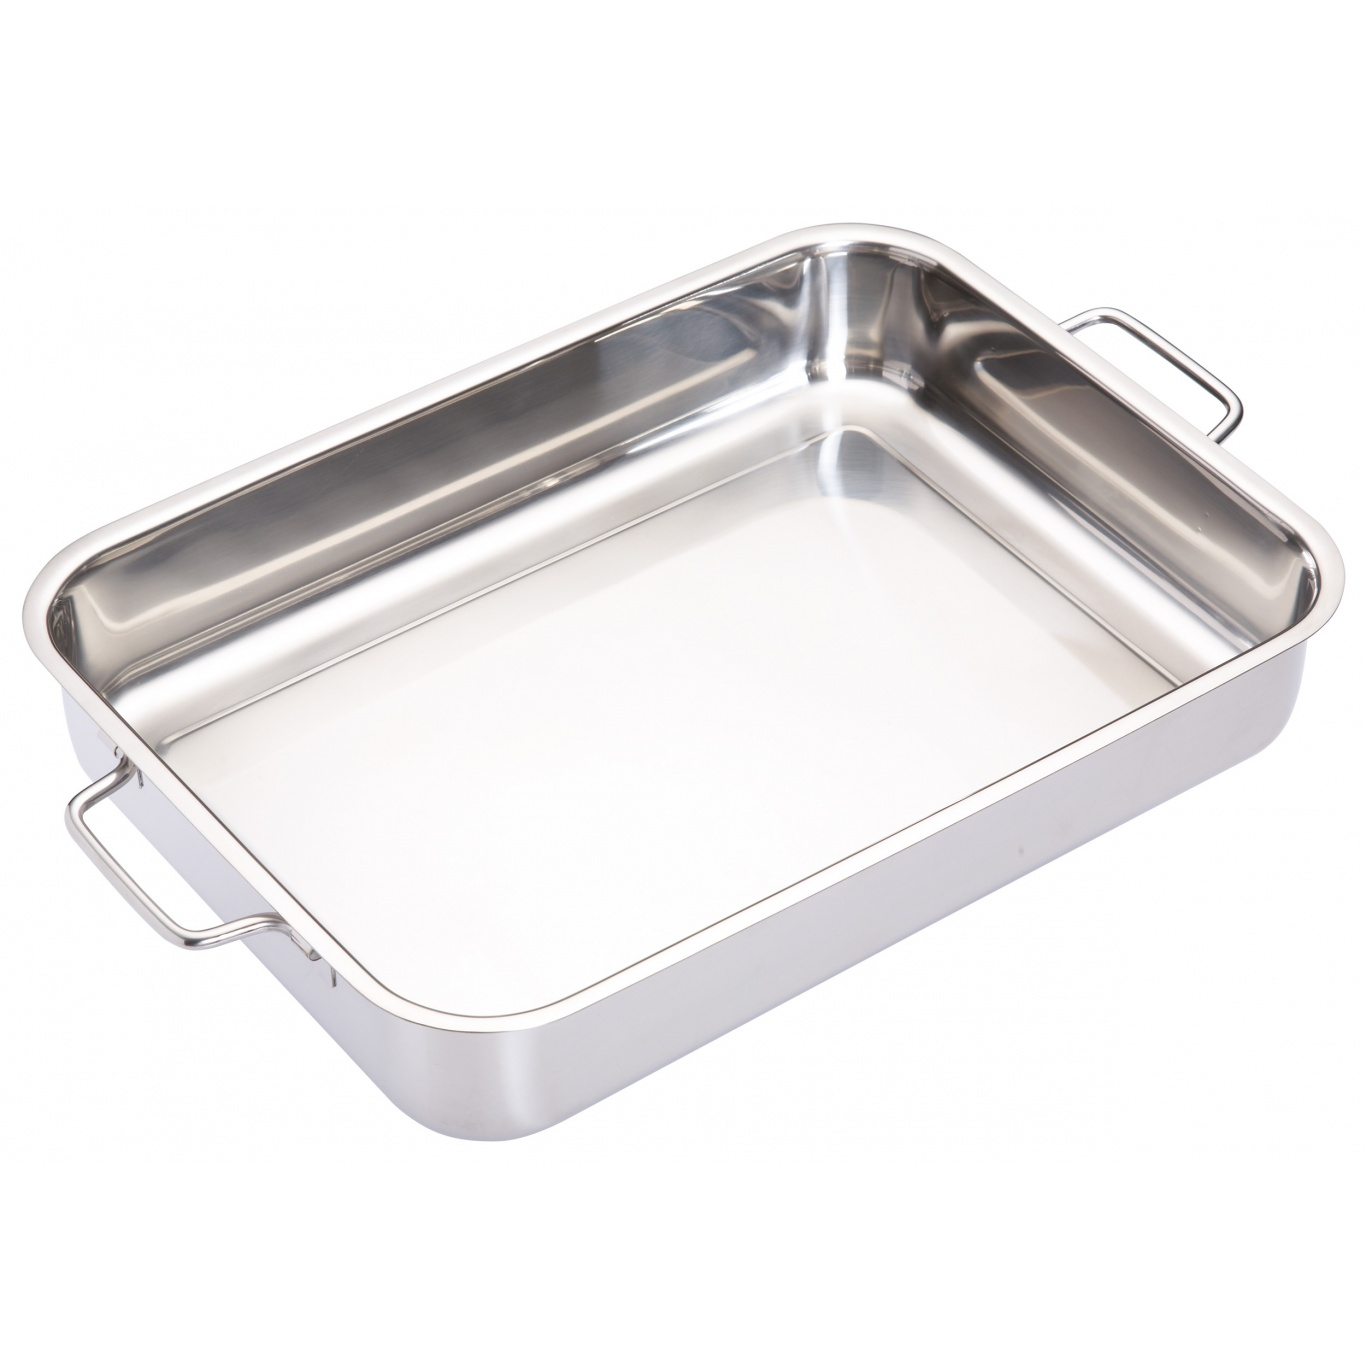 Image of Stainless Steel Heavy Duty Roasting Pan 37cm x 27cm x 6.5cm